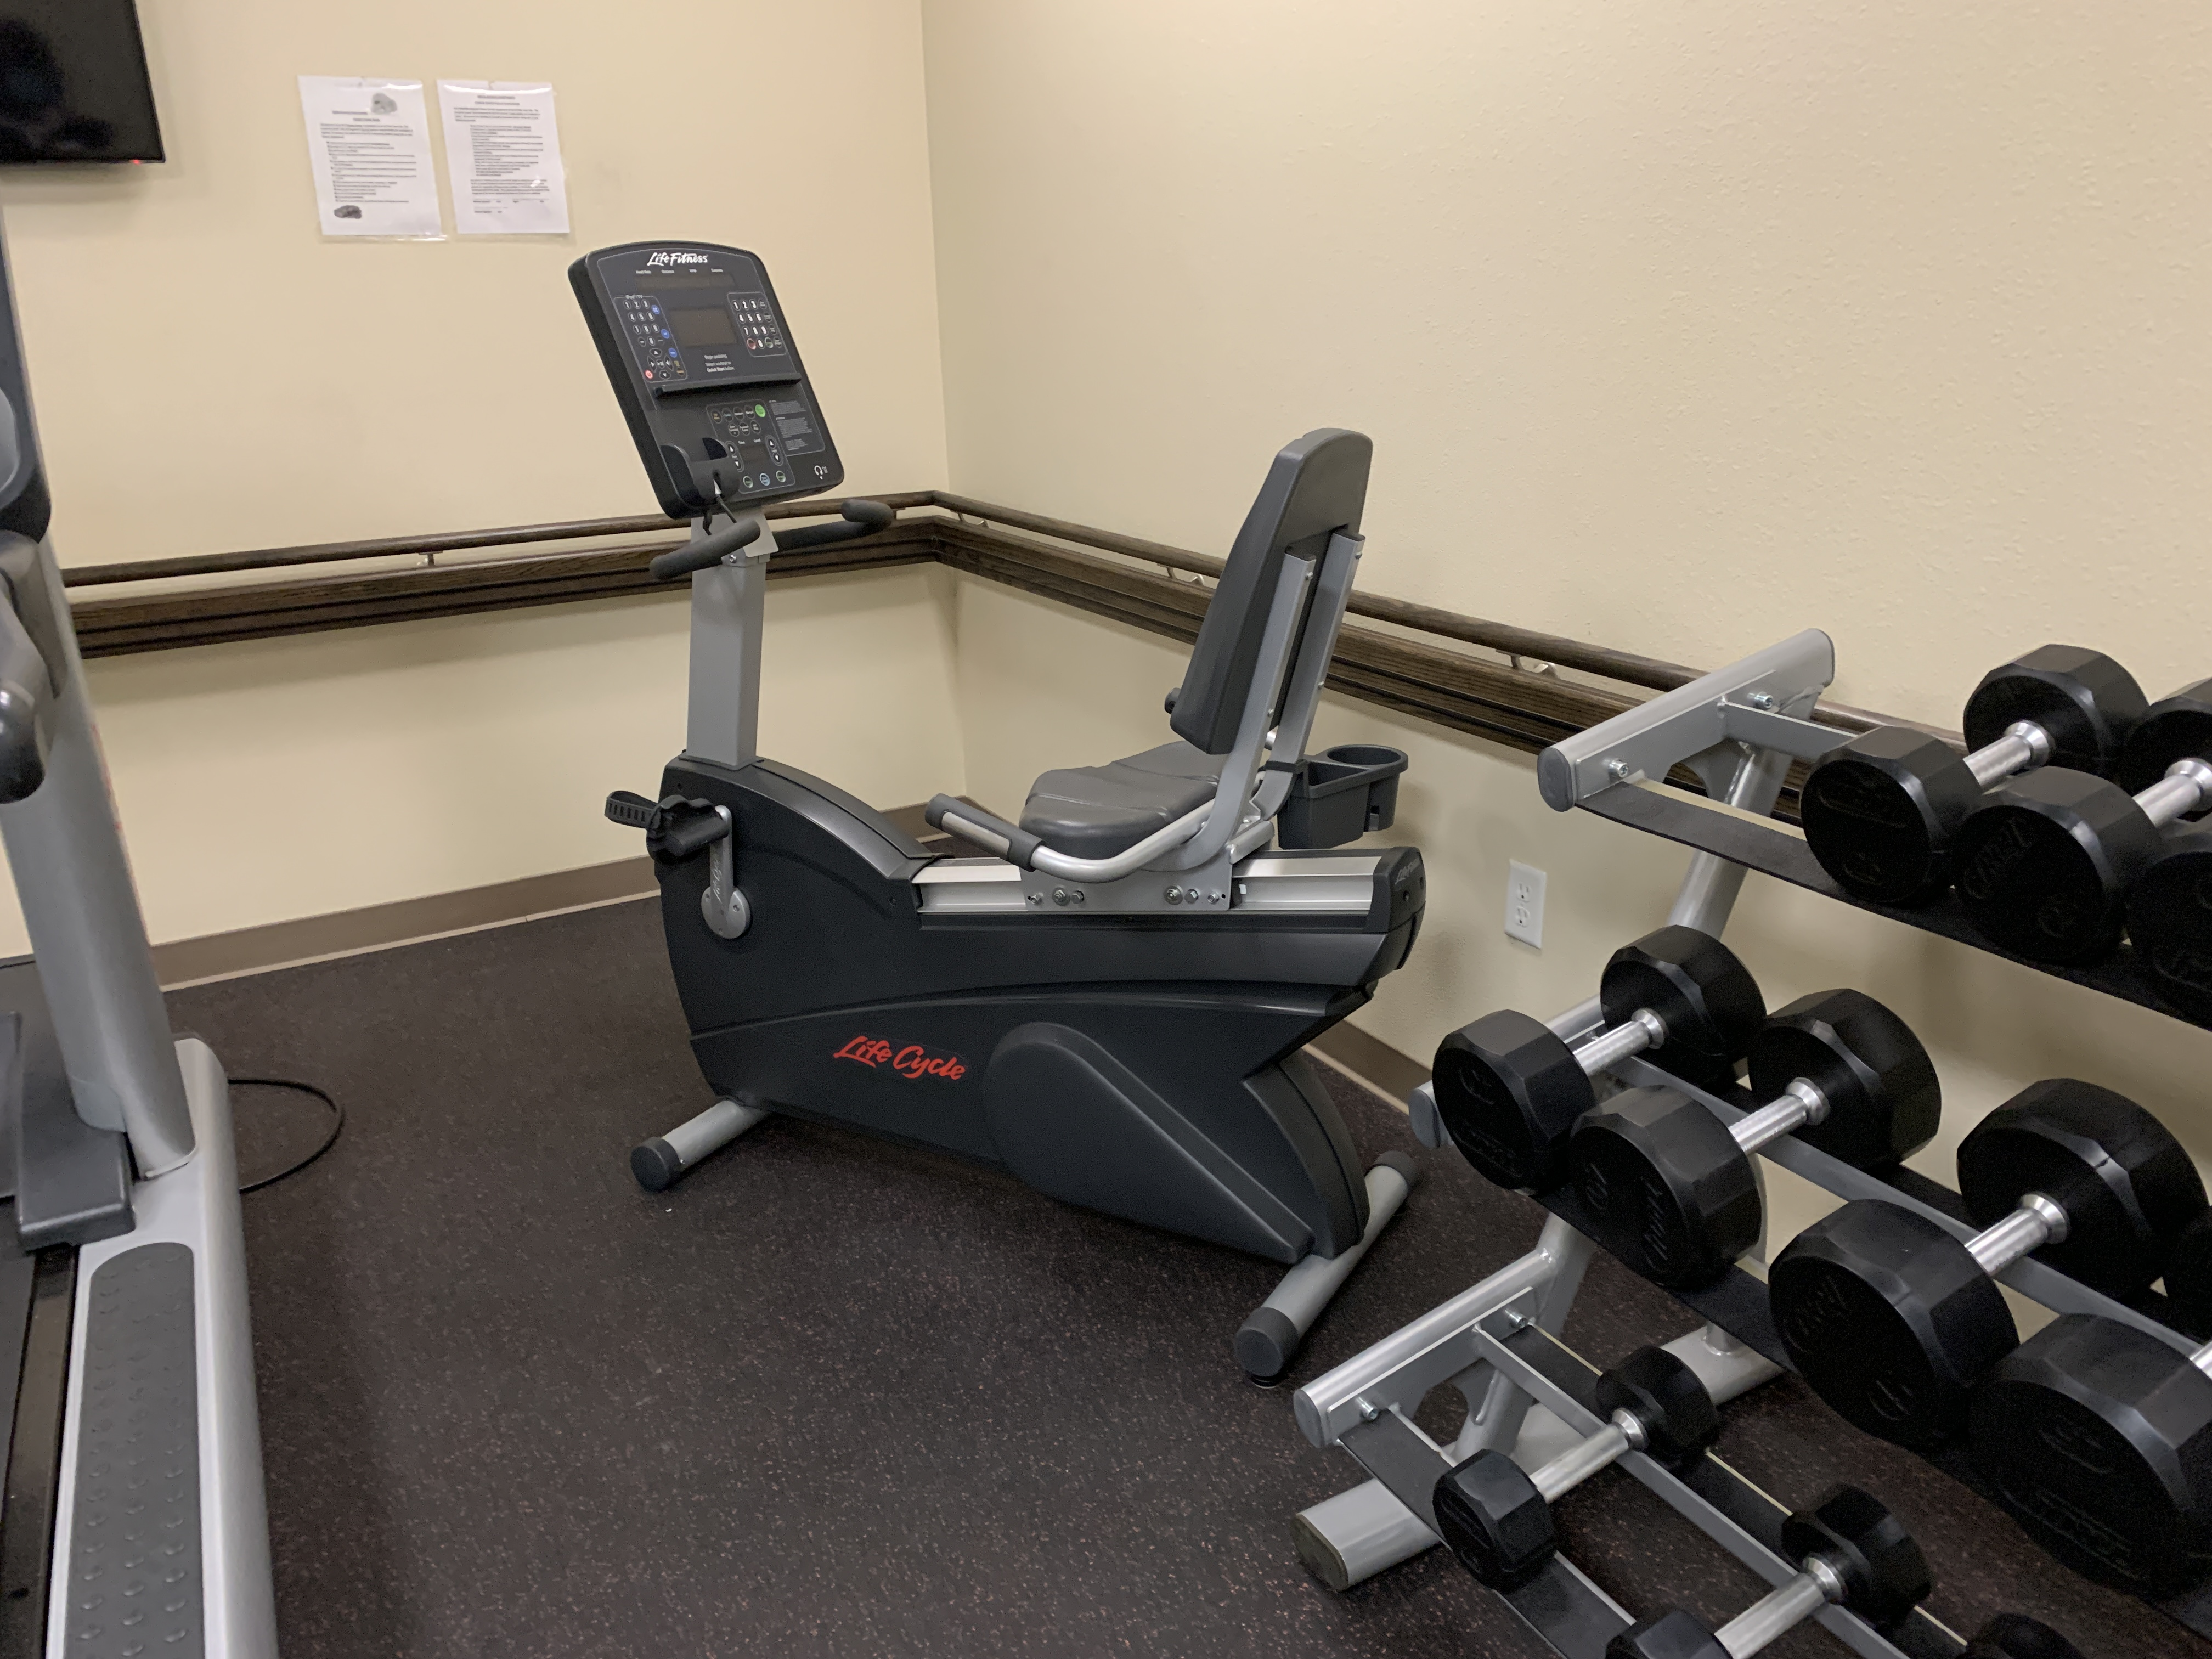 View of a corner of a fitness room. There is an exercise bike machine and weights on a stand.